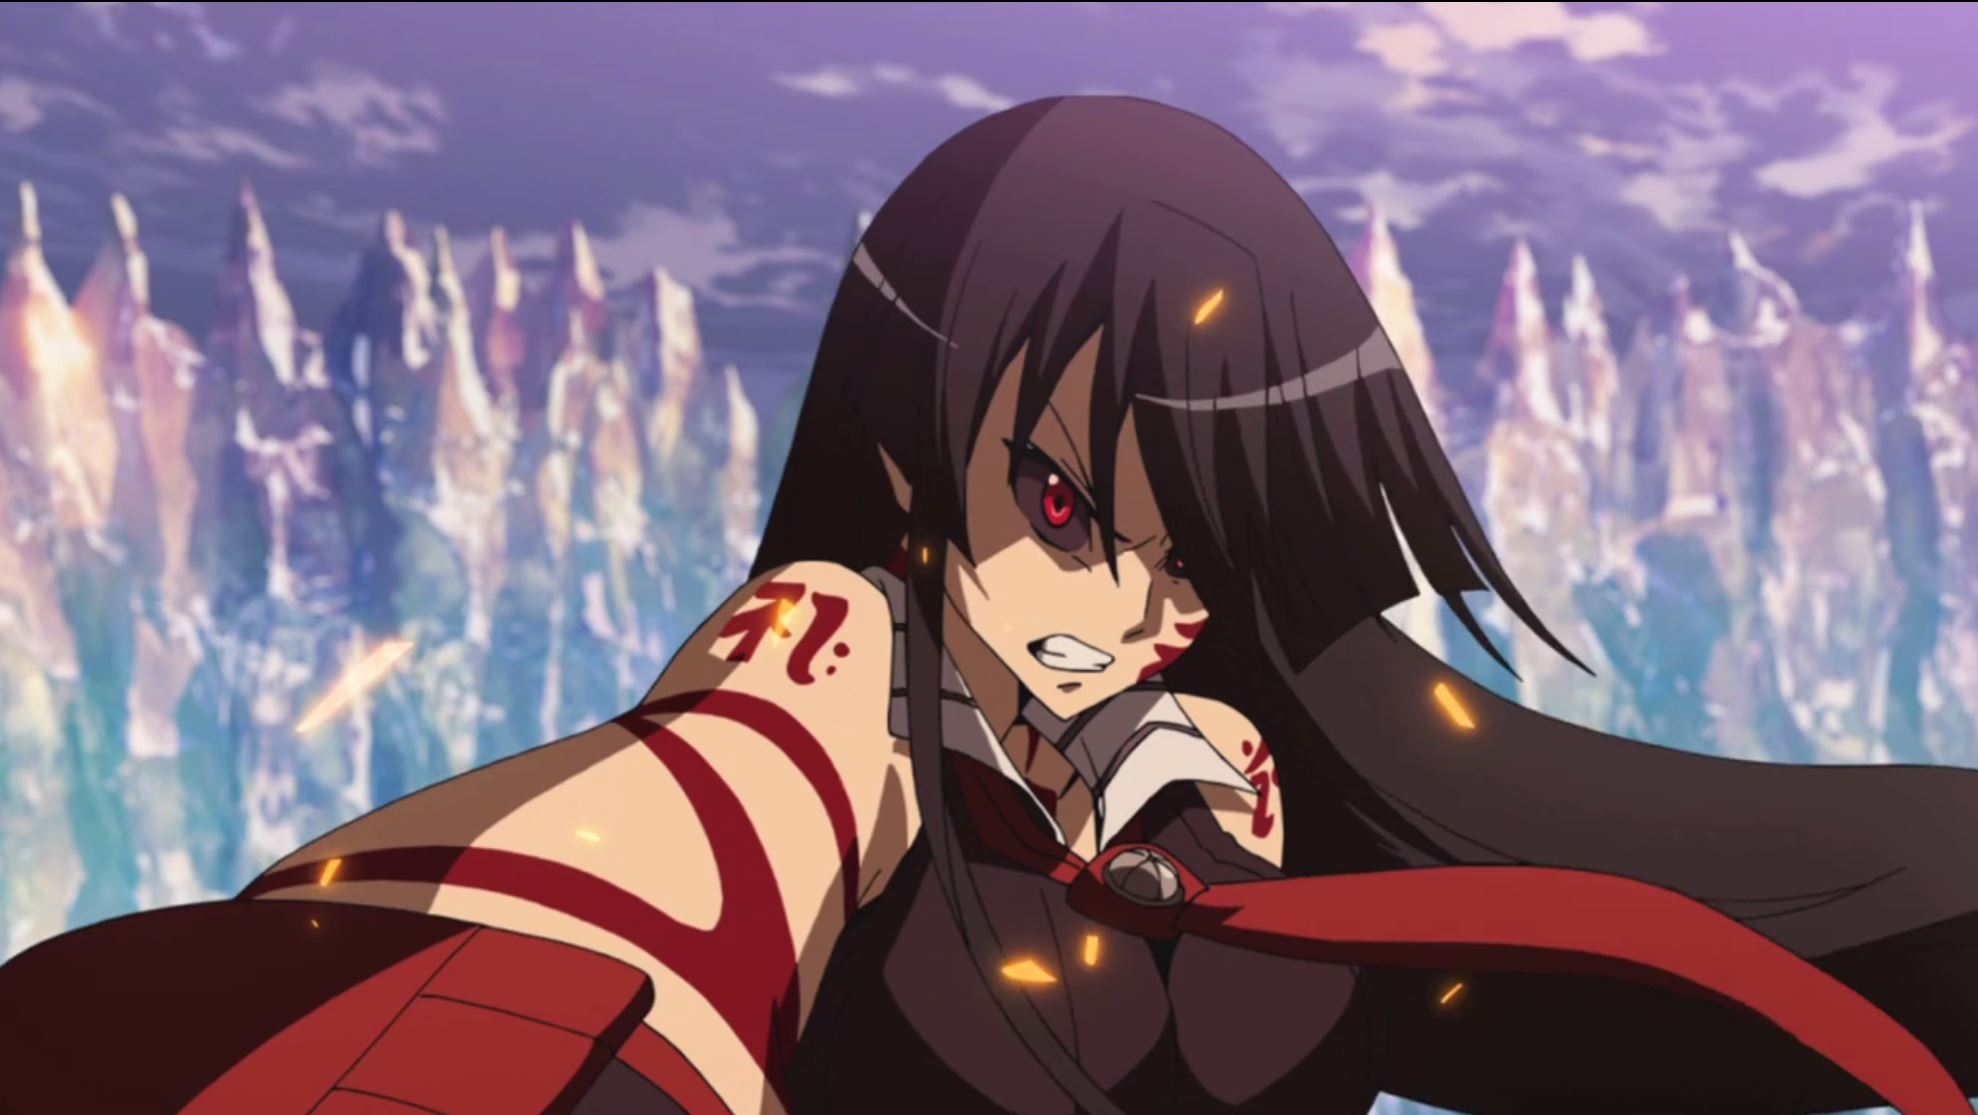 Why So Serious Wallpaper Iphone 6 Akame Ga Kill Wallpapers High Quality Download Free